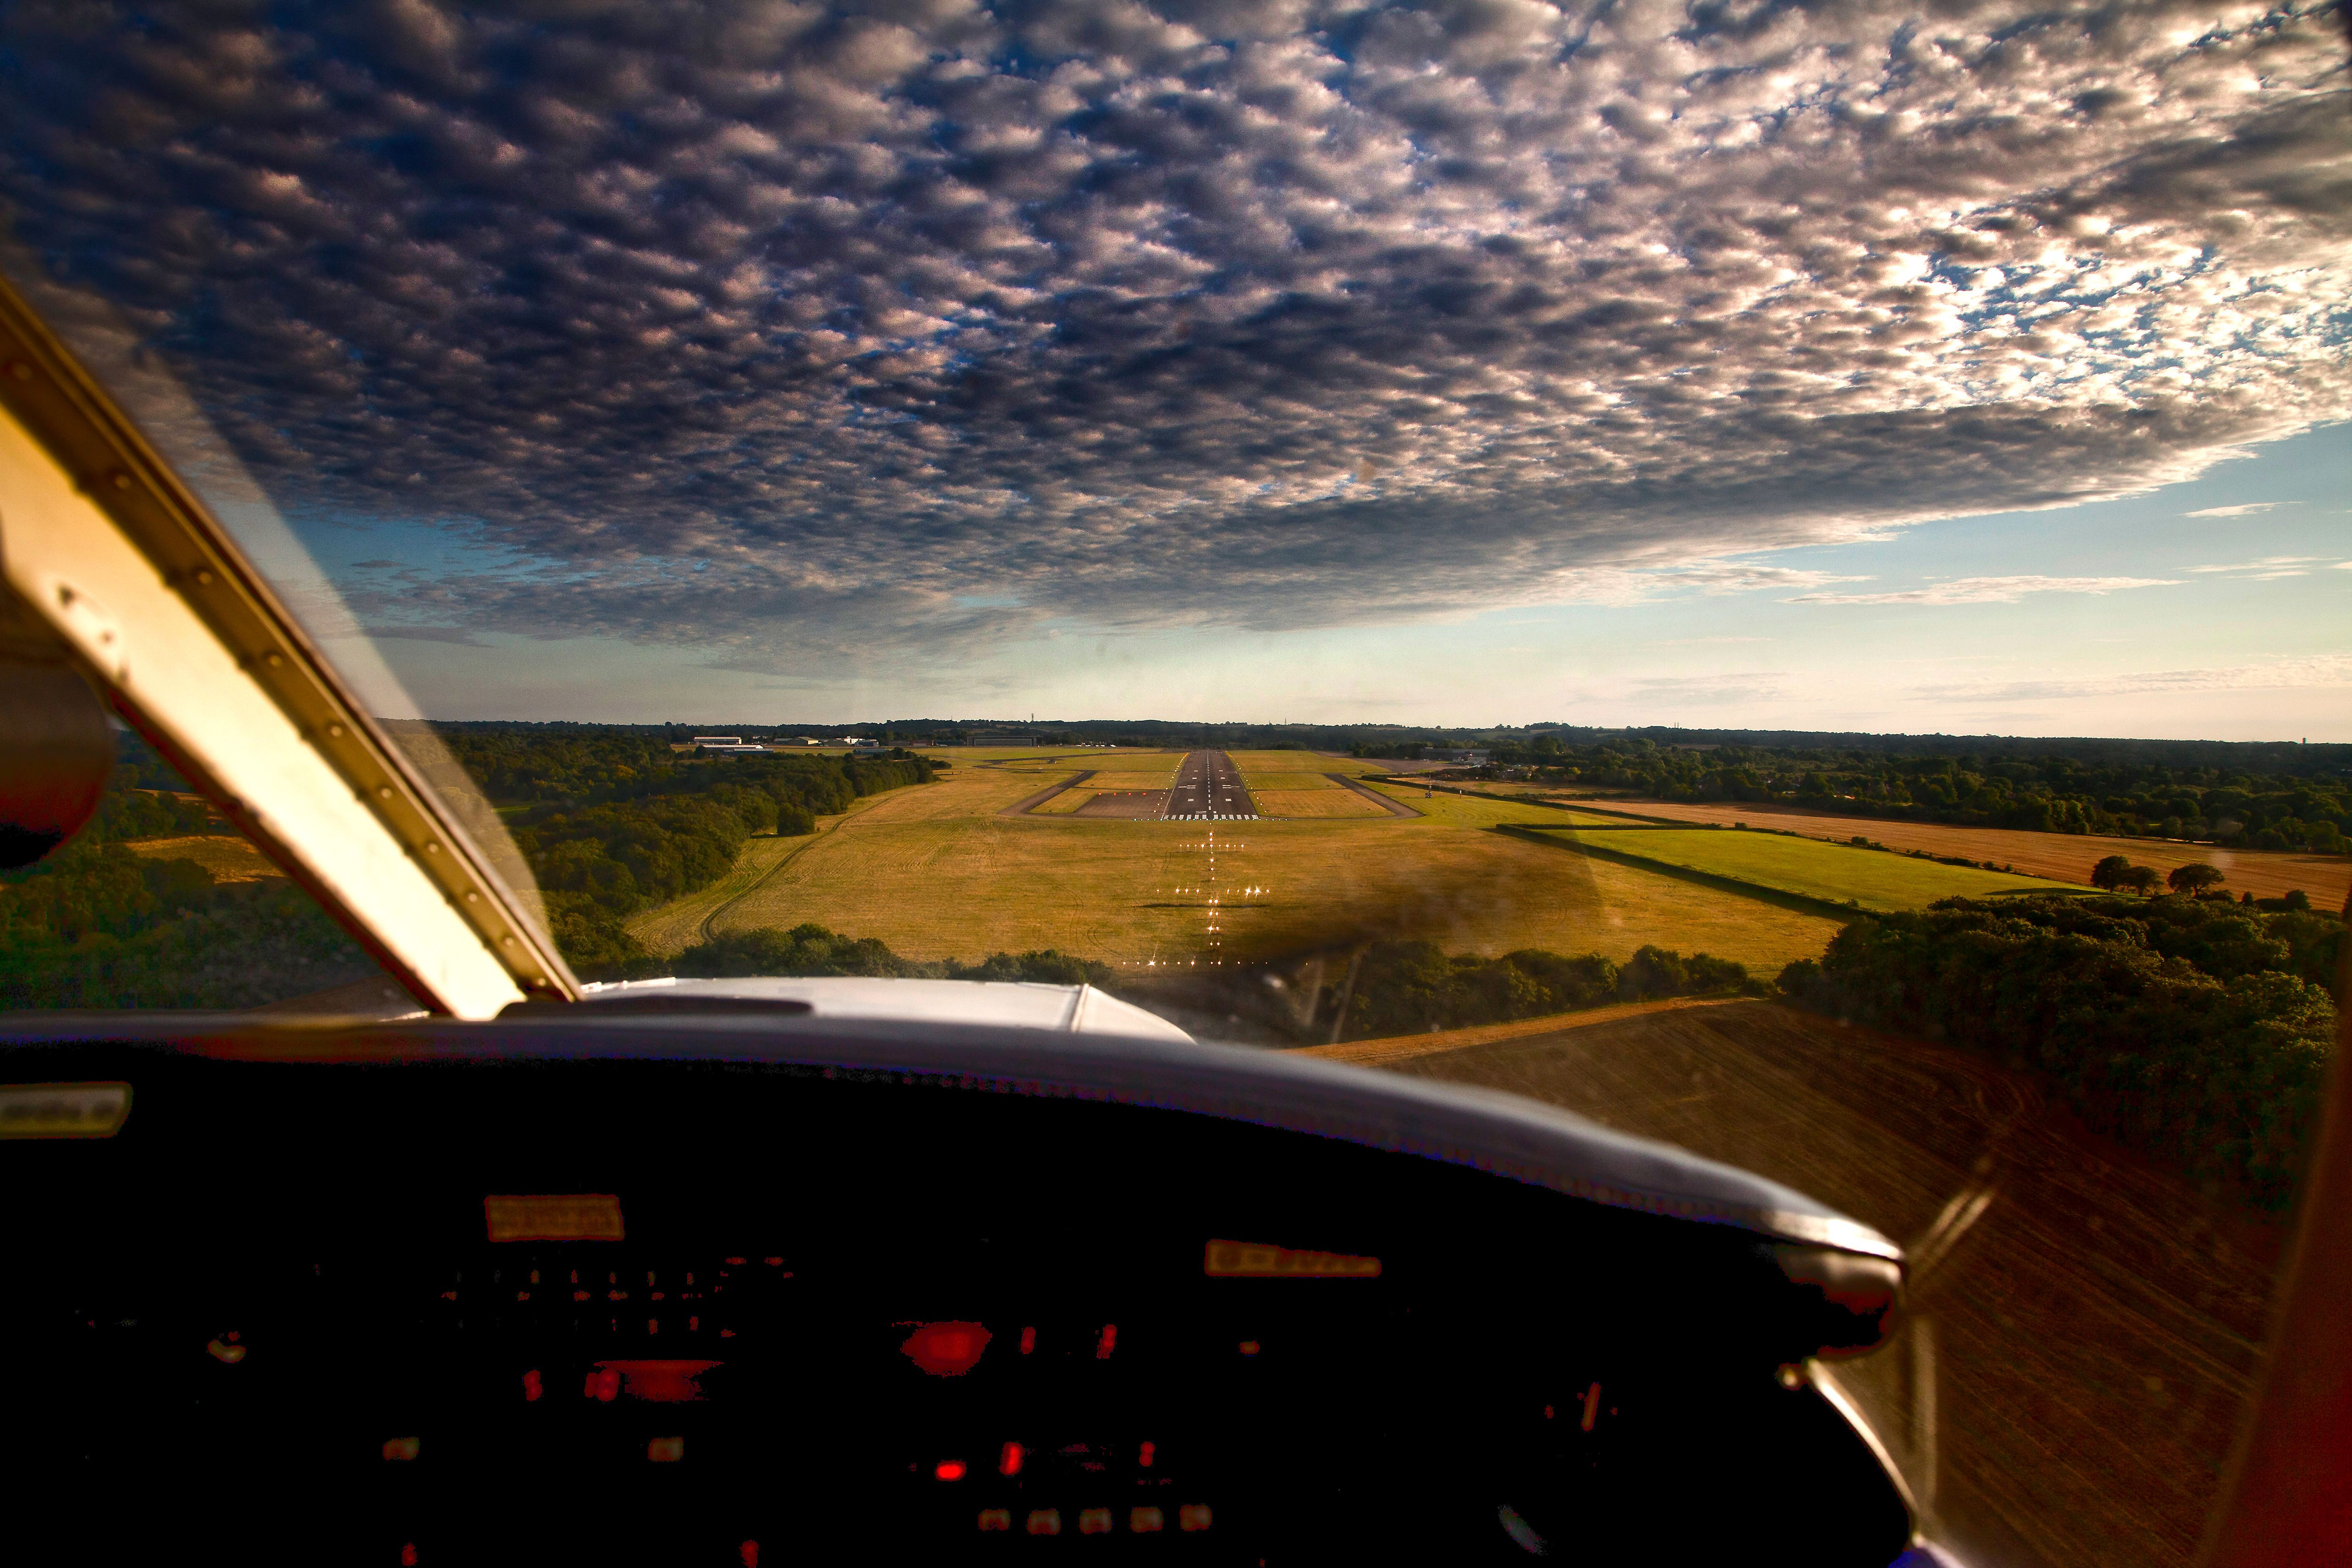 View from the cockpit of a plane flying over the English countryside.